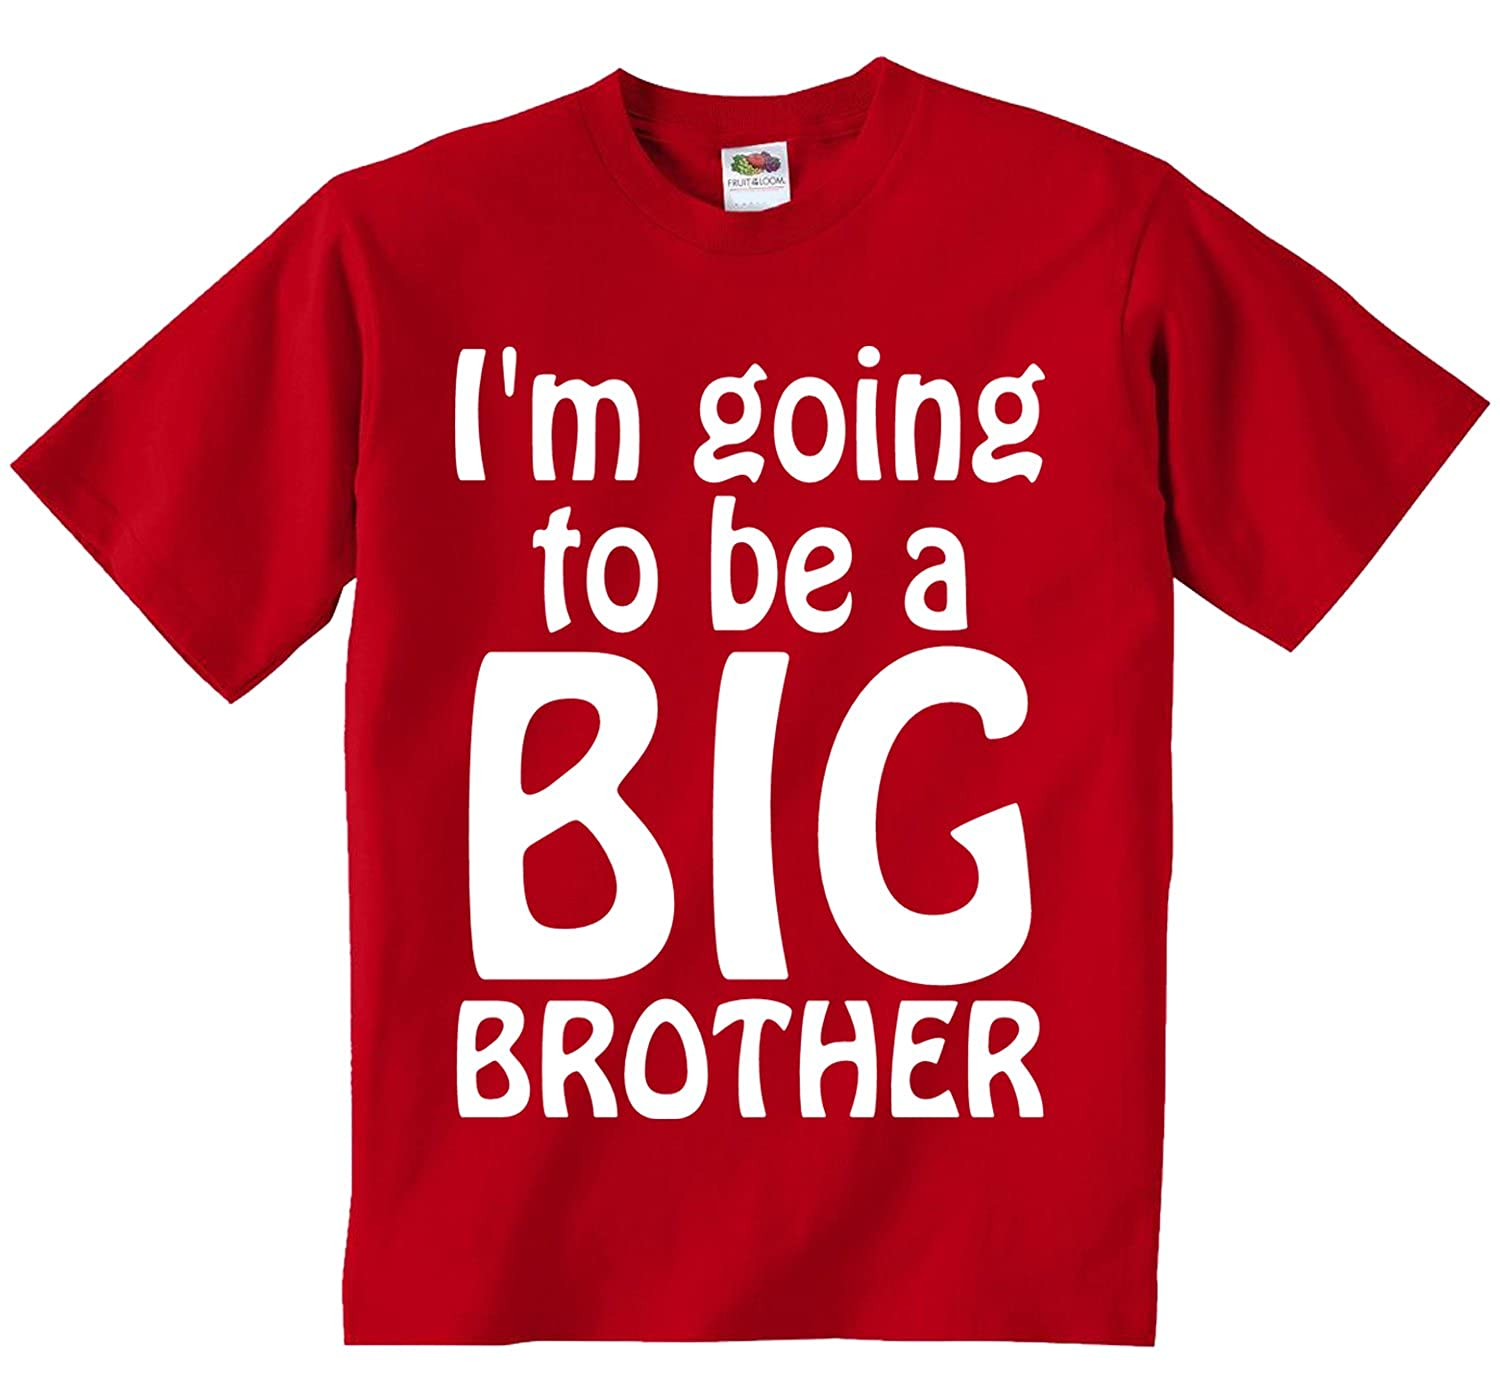 c7e3d4c2c Big Brother Shirts Old Navy - DREAMWORKS